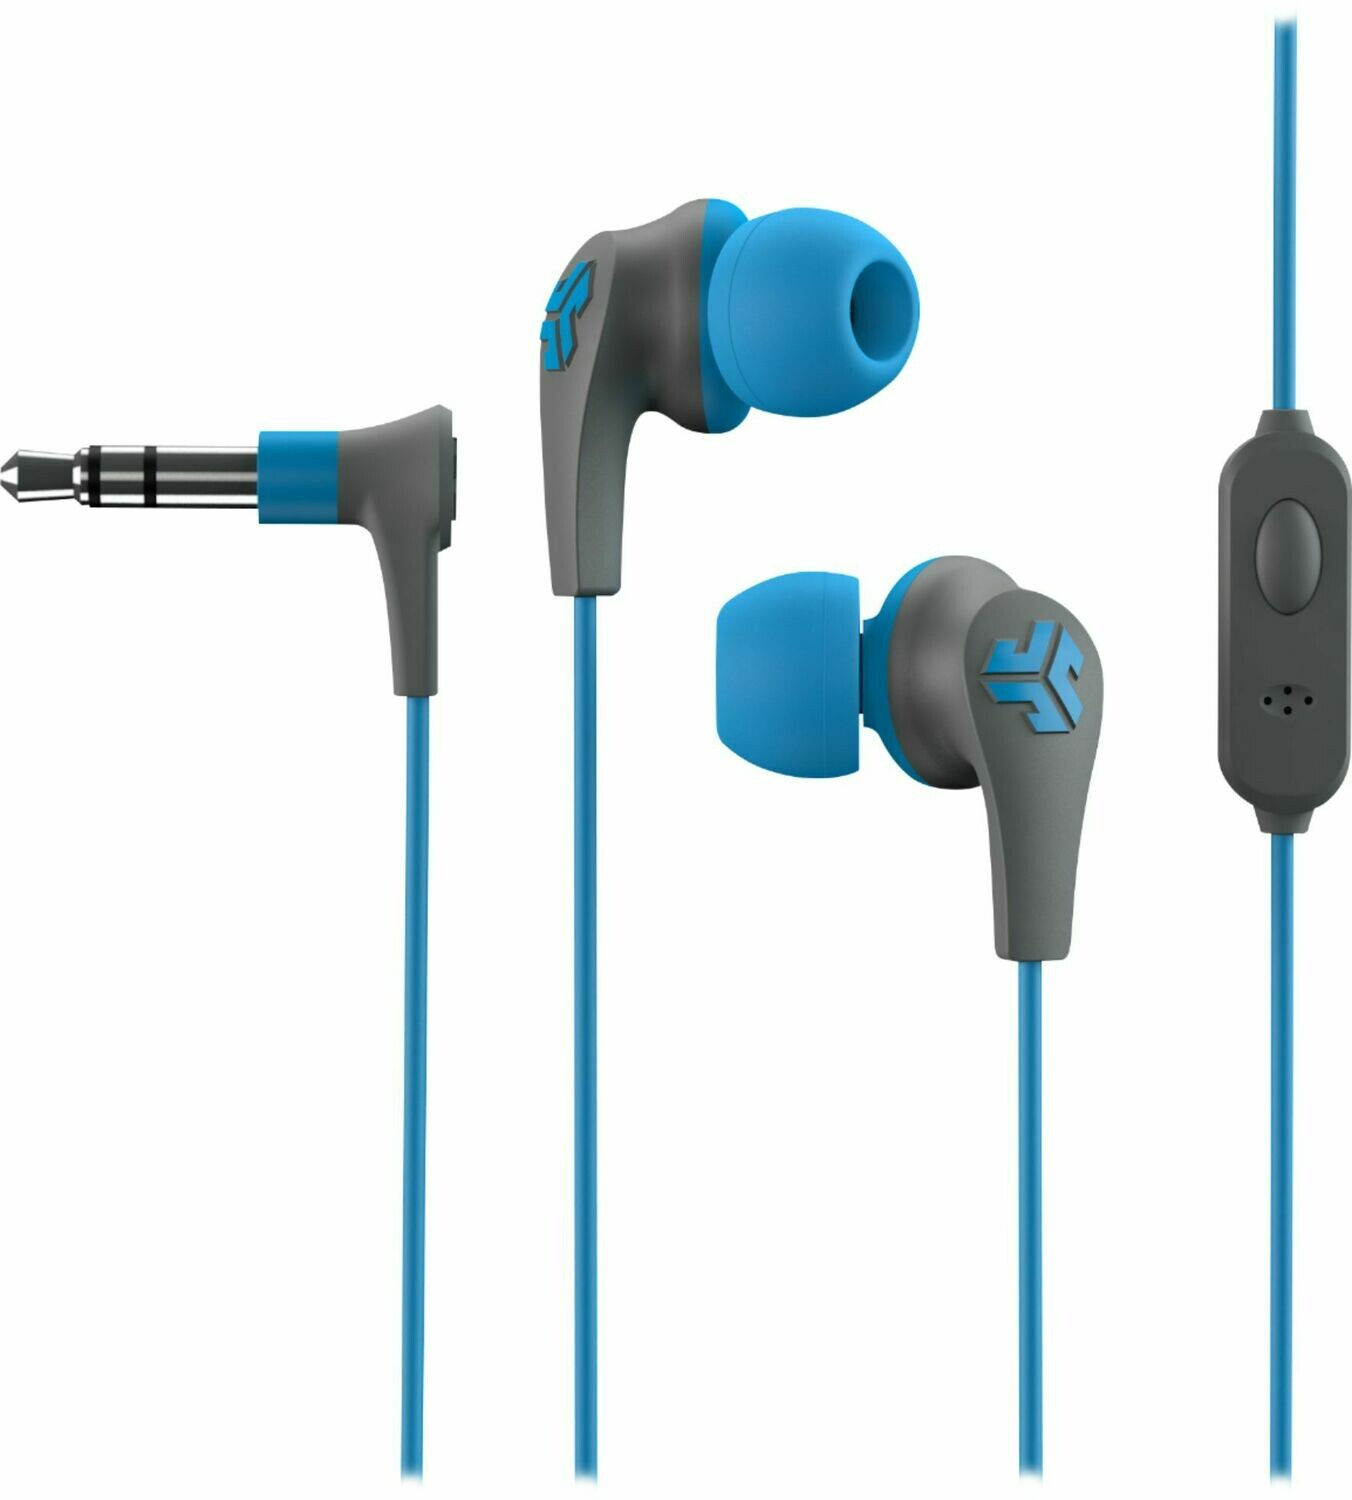 AURICULARES CON CABLE - JBUDS PRO